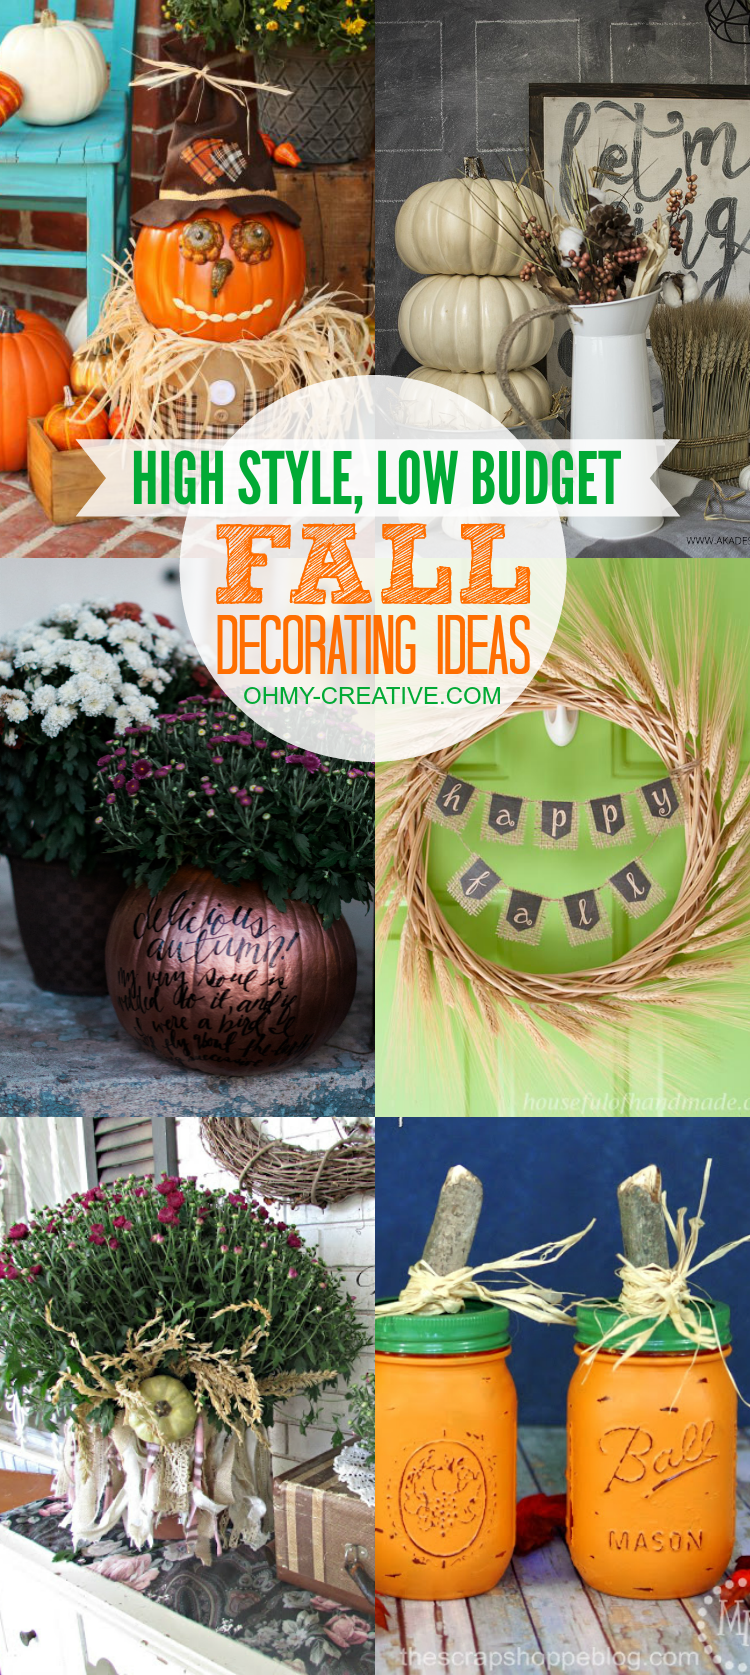 High style low budget fall decorating ideas for Creative home decorating ideas on a budget